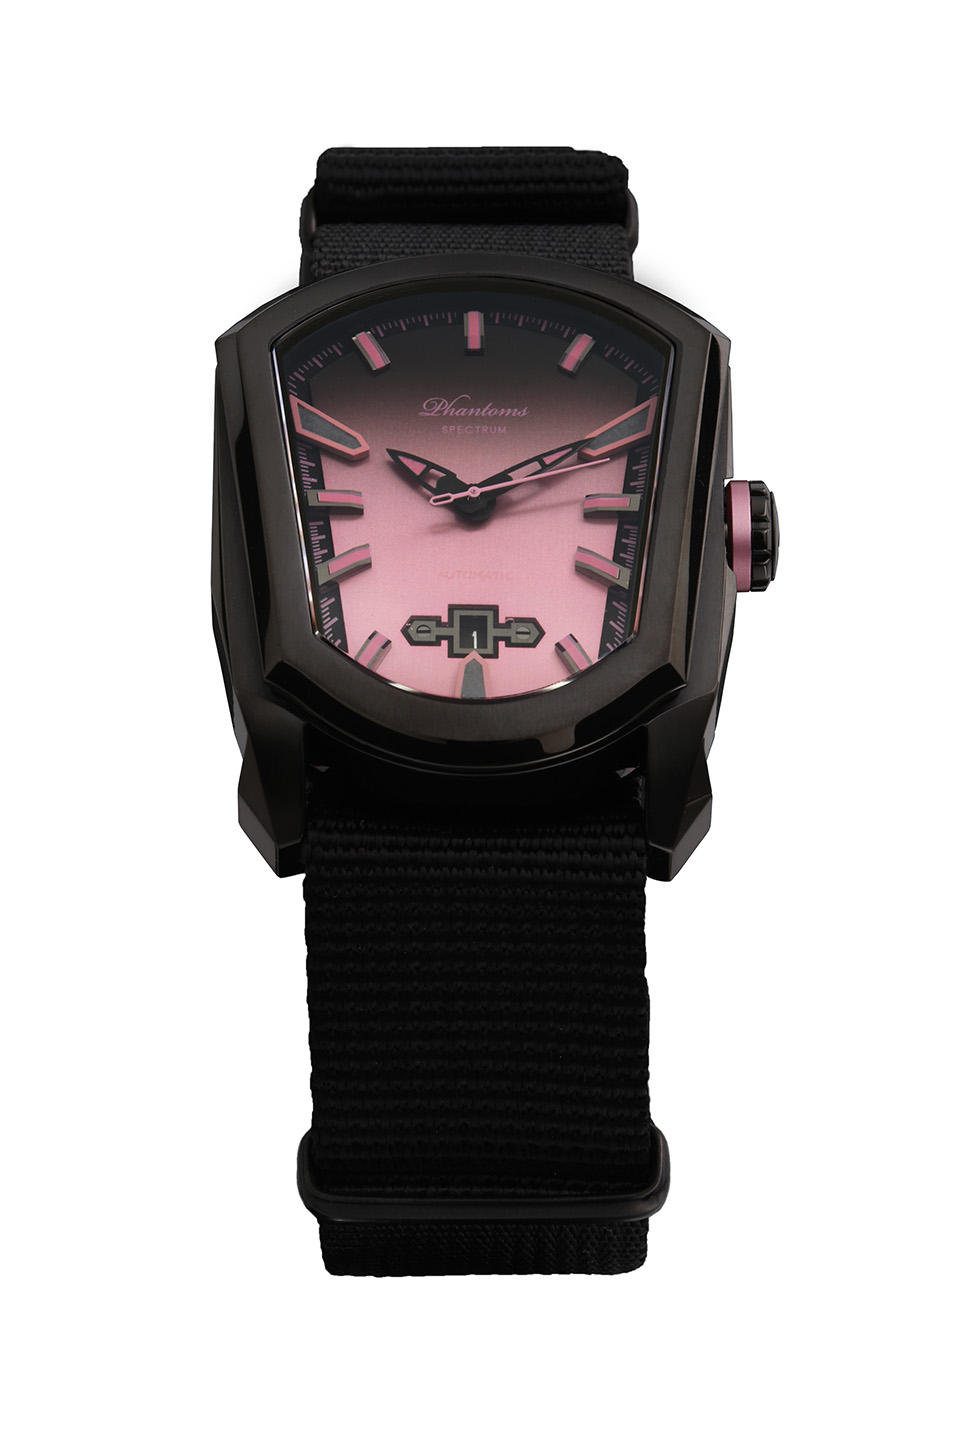 PHTW405 Phantoms rose pink Spectrum miyota automatic mechanical watch